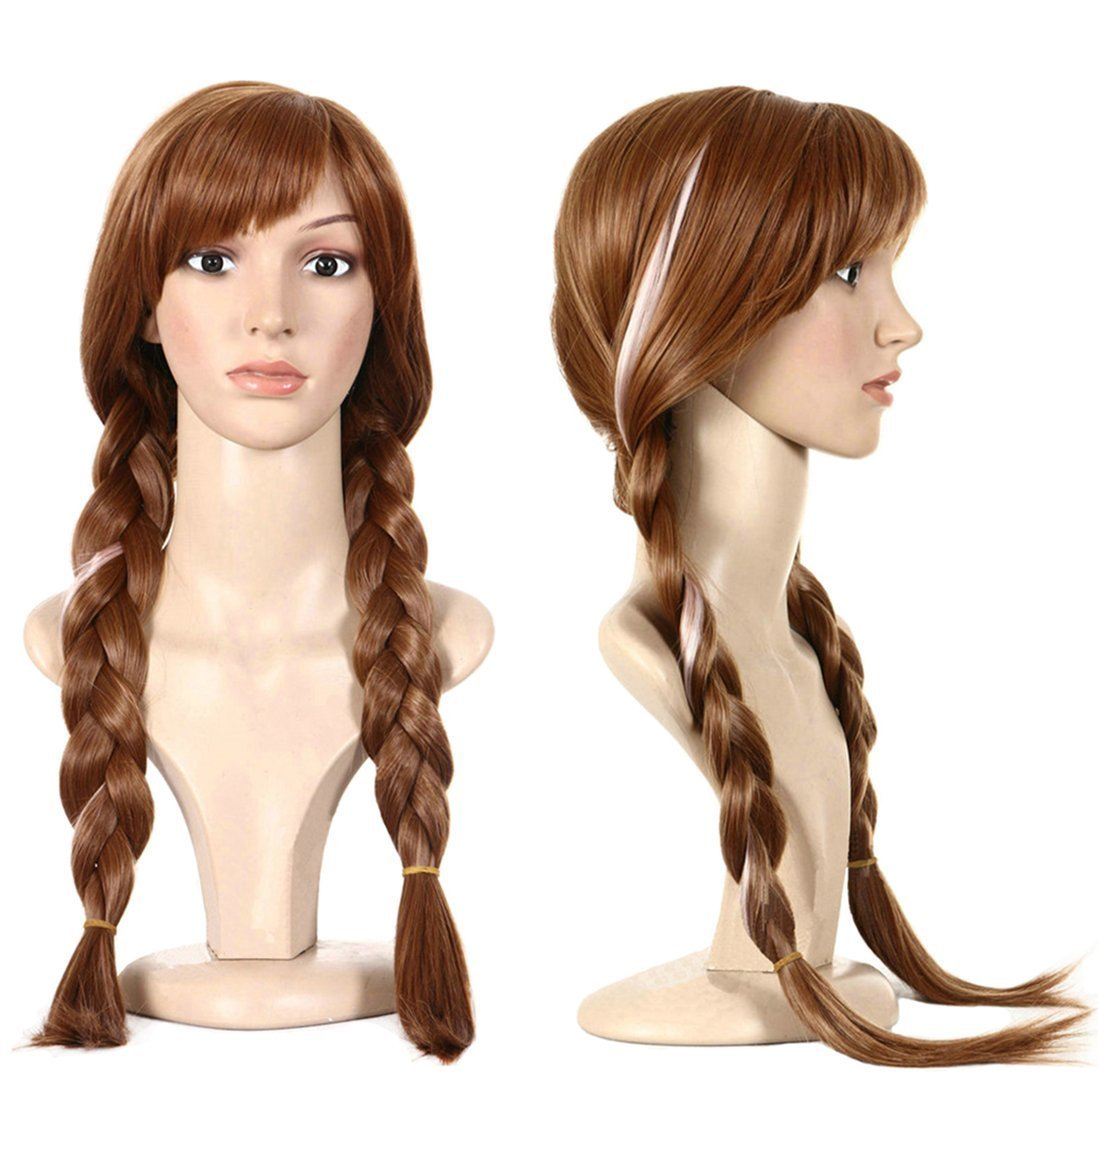 Anogol Free Hair Cap +Movie Cosplay Wig Party Wigs Brown Braid Wig Halloween Wig(Brown,1-Pack)